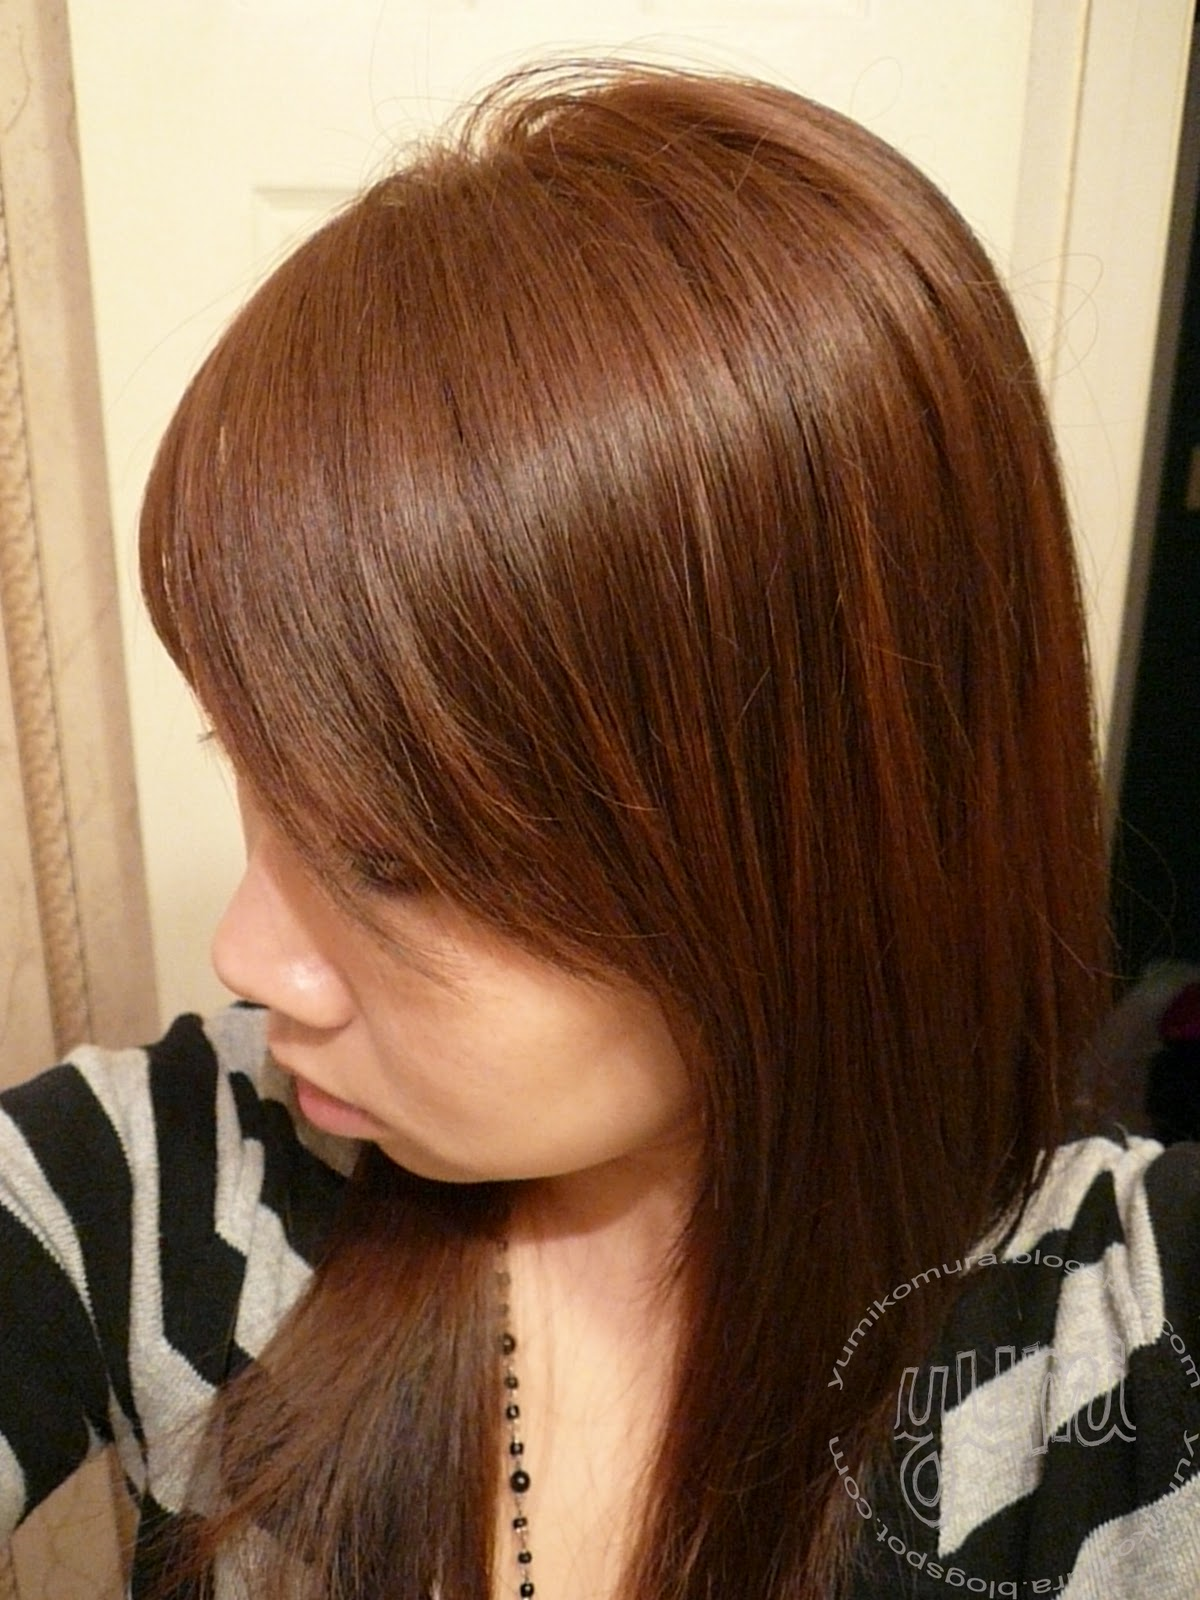 Loreal Hair Colour Copper Brown Shade Dark Brown Hairs Of ... - photo#27